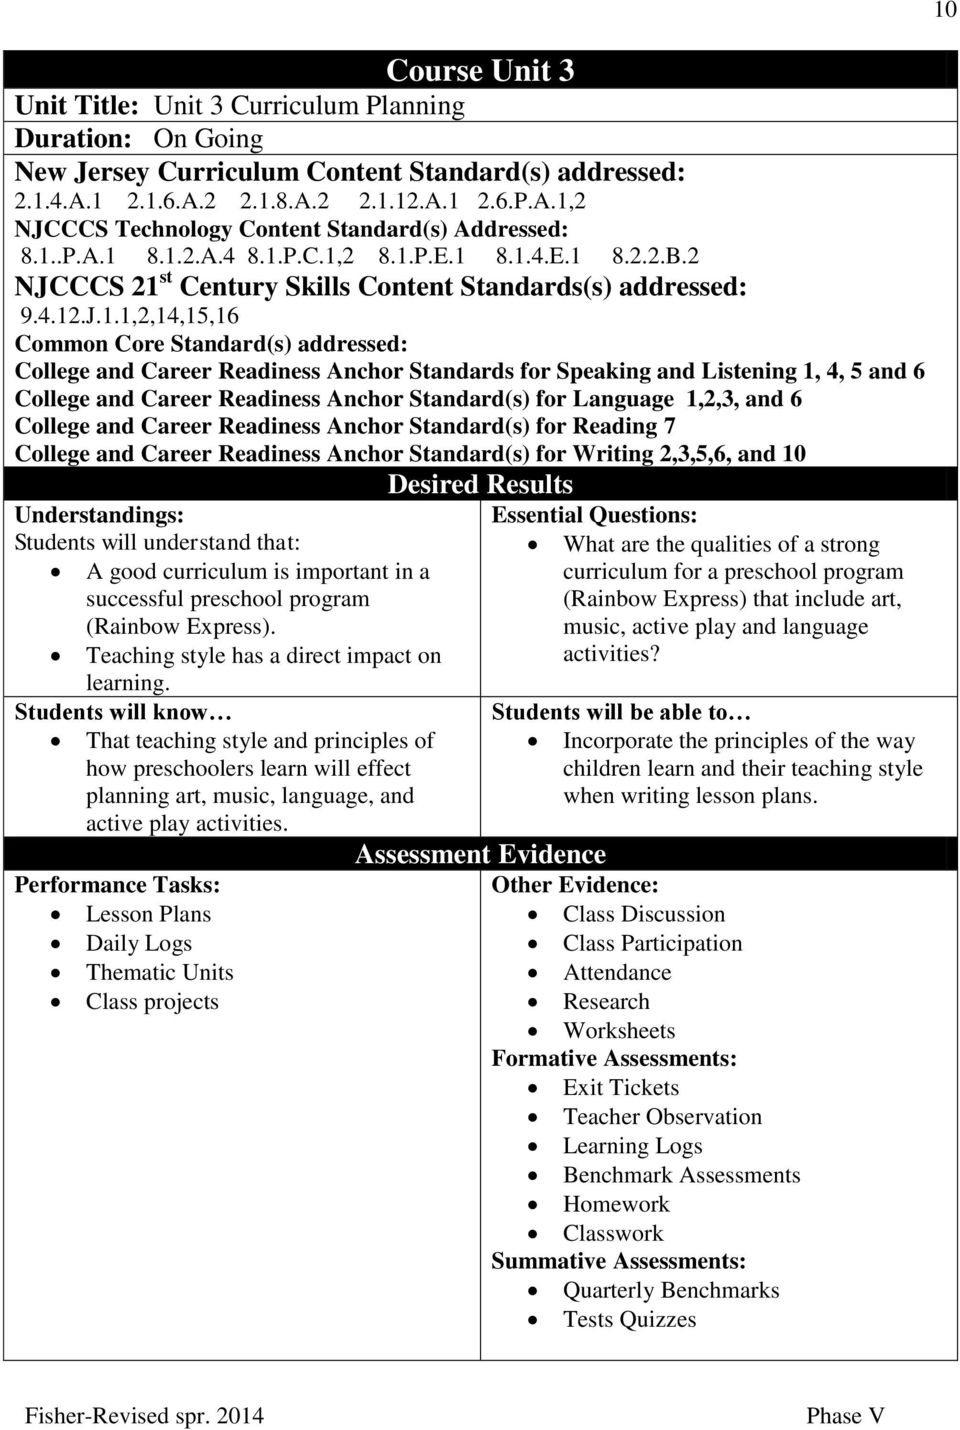 Readiness Anchor Standards for Speaking and Listening 1, 4, 5 and 6 College and Career Readiness Anchor Standard(s) for Language 1,2,3, and 6 College and Career Readiness Anchor Standard(s) for